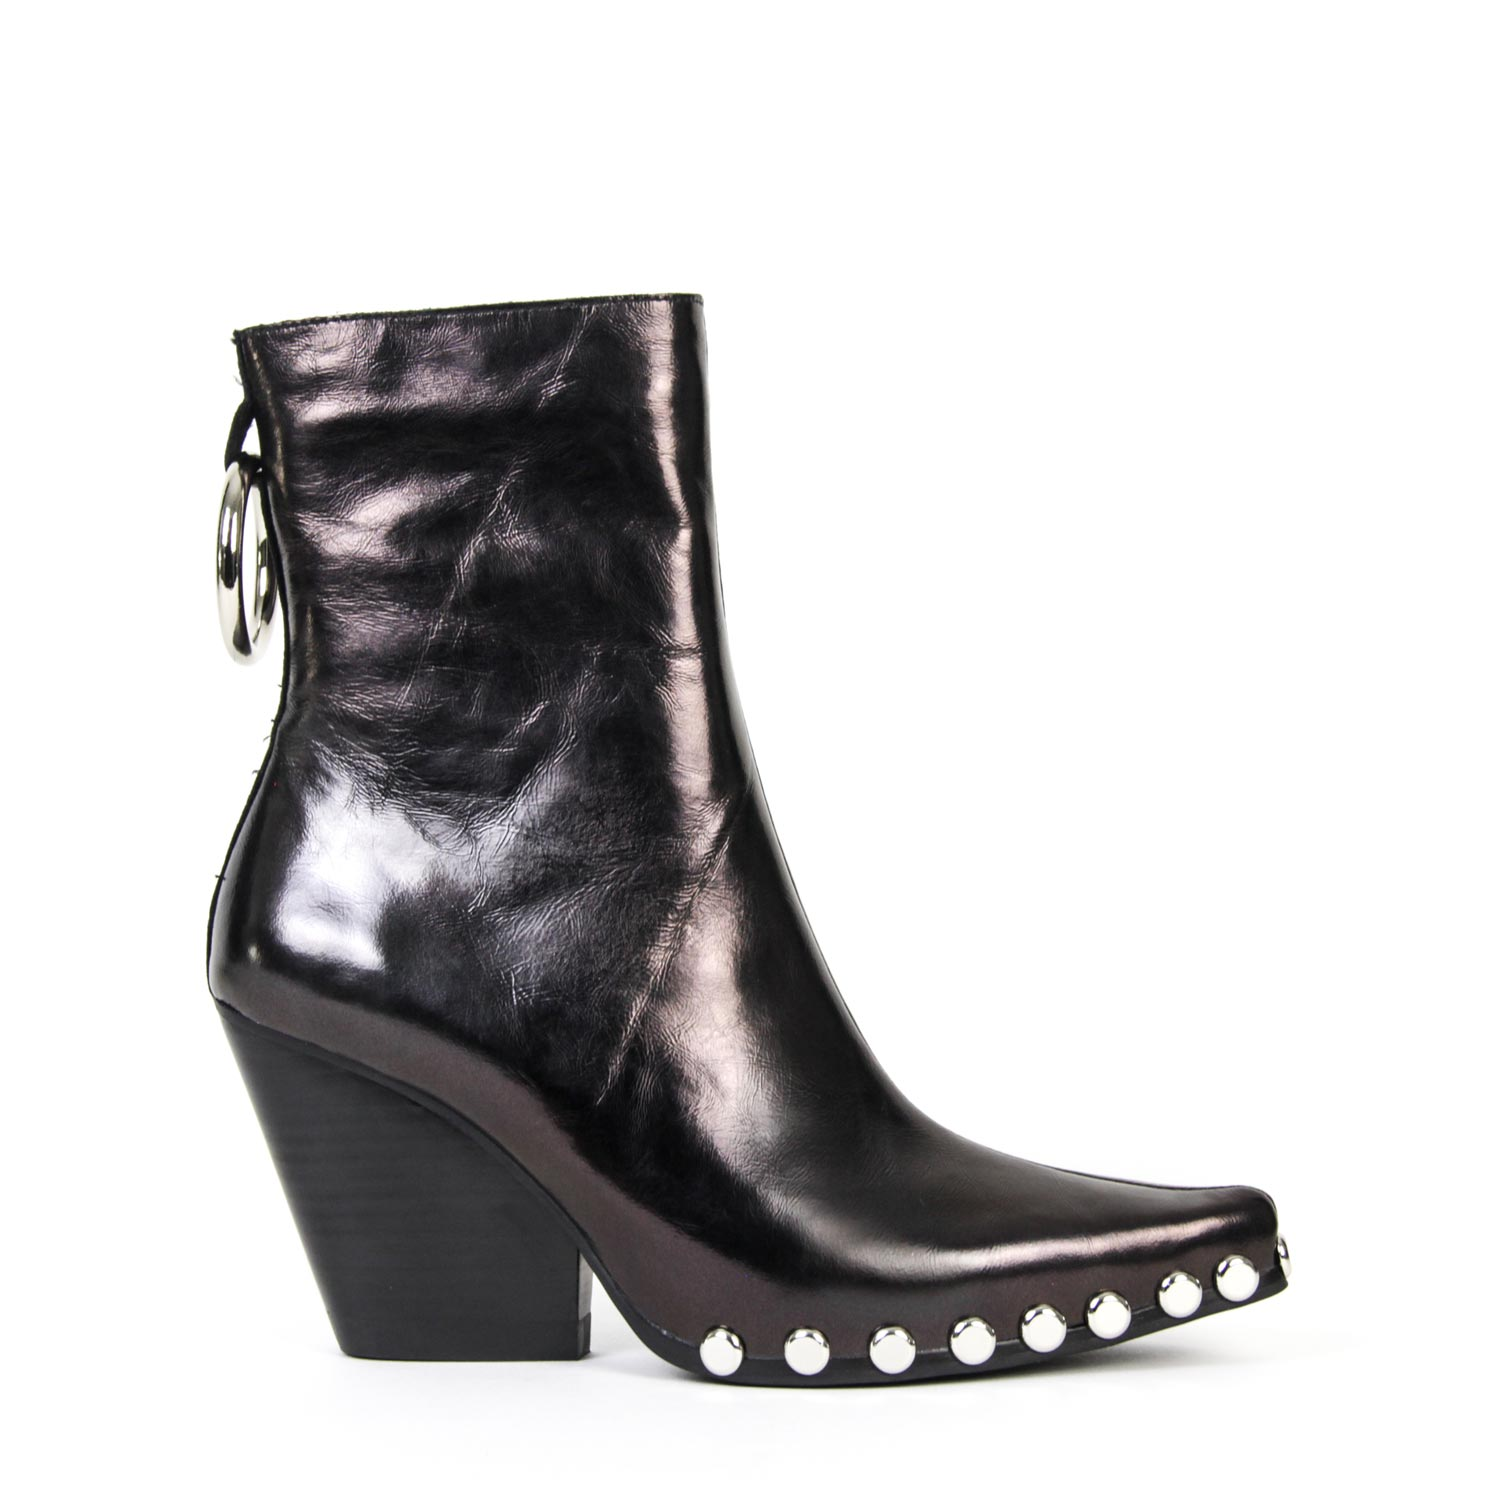 041271787a1ba Details about NEW JEFFREY CAMPBELL WALTON-STR BOOT BLACK METALLIC